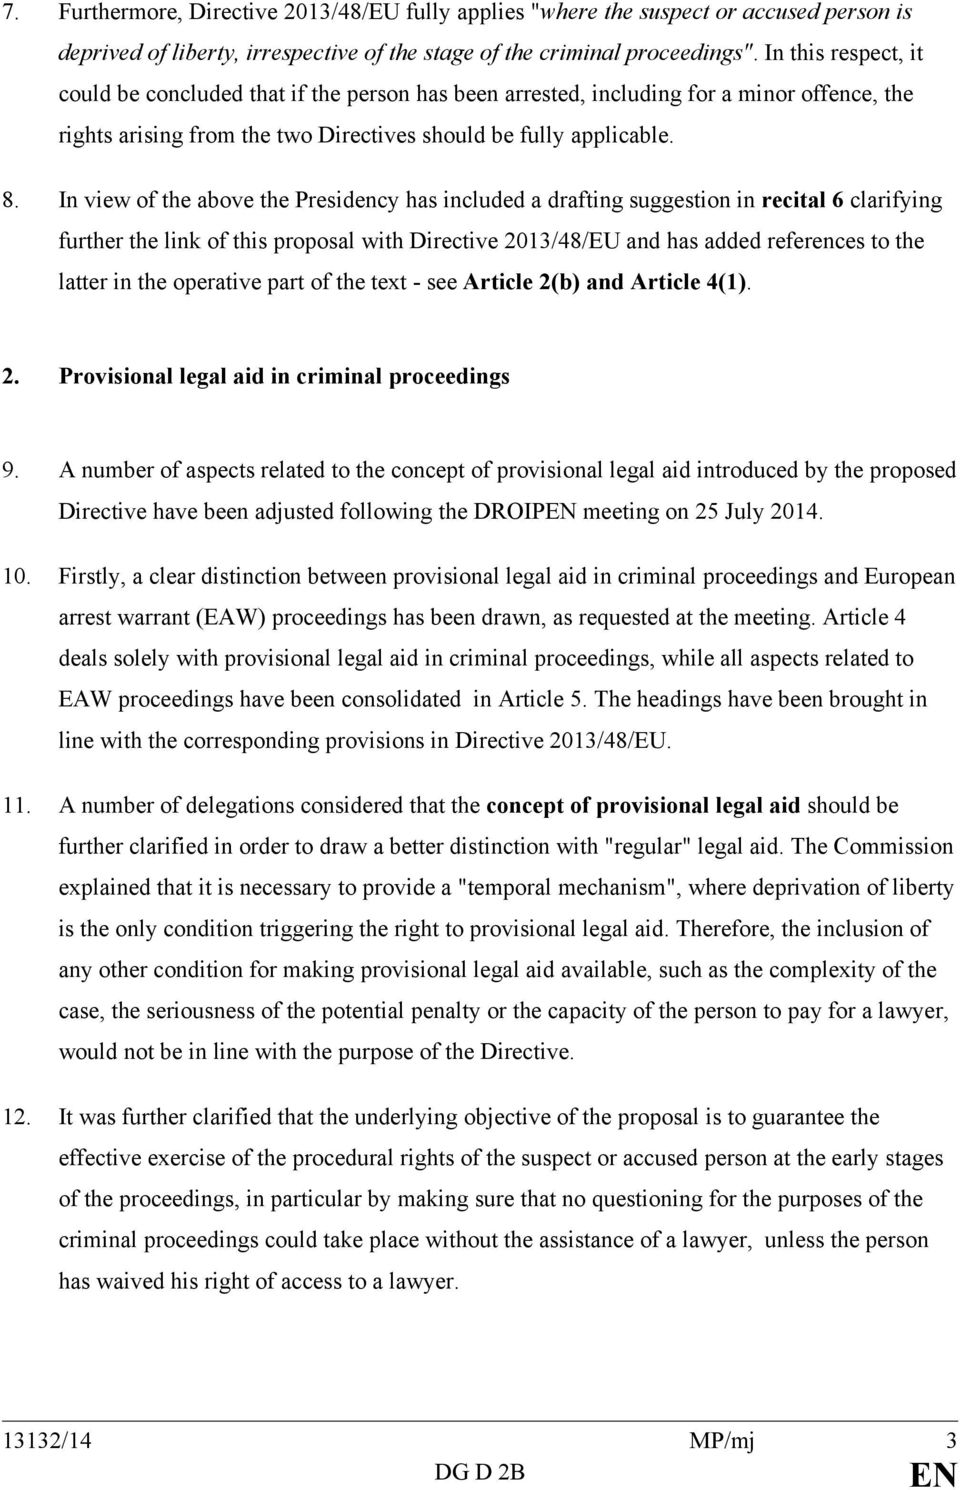 In view of the above the Presidency has included a drafting suggestion in recital 6 clarifying further the link of this proposal with Directive 2013/48/EU and has added references to the latter in